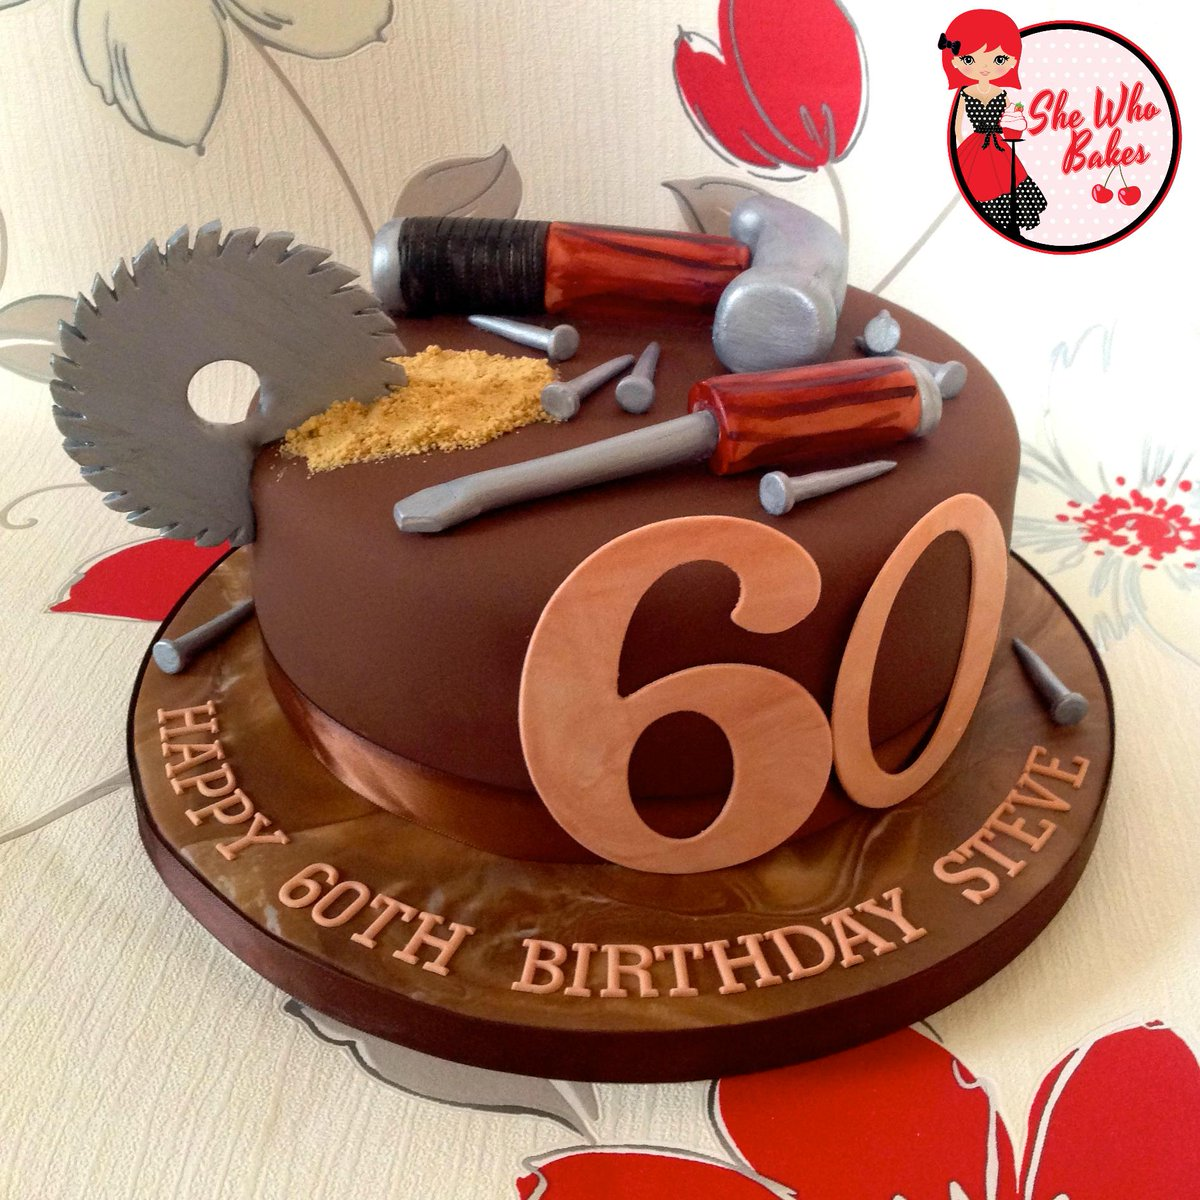 Miraculous Britt Box On Twitter Diy Themed 60Th Birthday Cake With Personalised Birthday Cards Sponlily Jamesorg